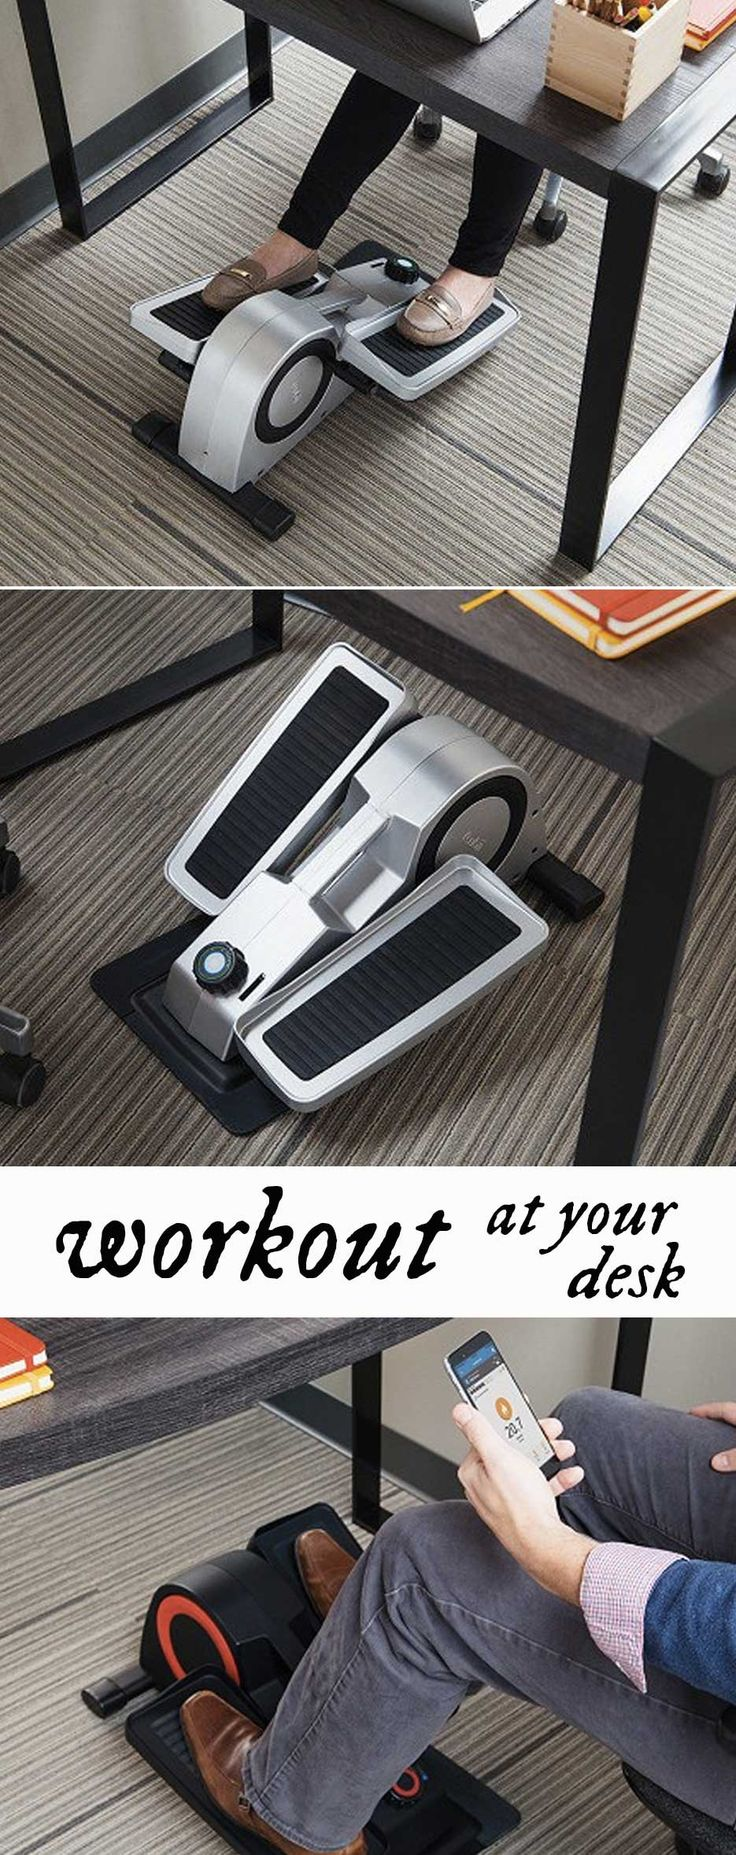 Keep moving even while you're busy at work. This under-desk elliptical lets you pedal as you type, take calls, and whatever other work you need to do while seated.